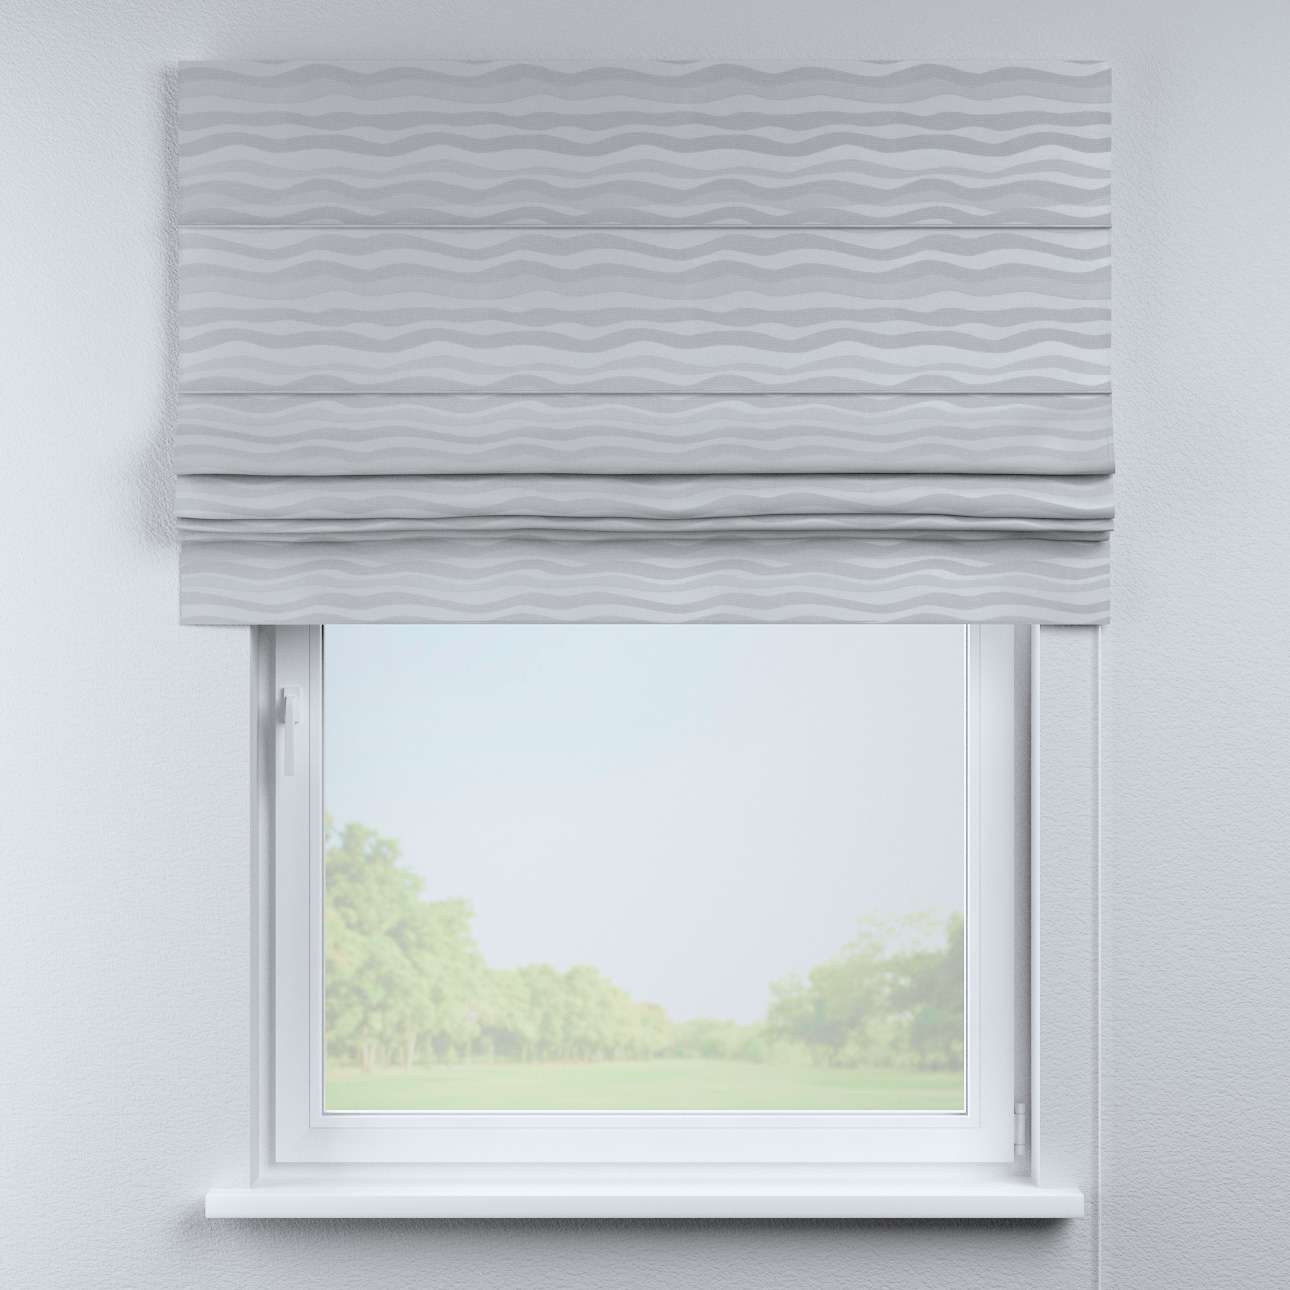 Padva roman blind  in collection Damasco, fabric: 141-72